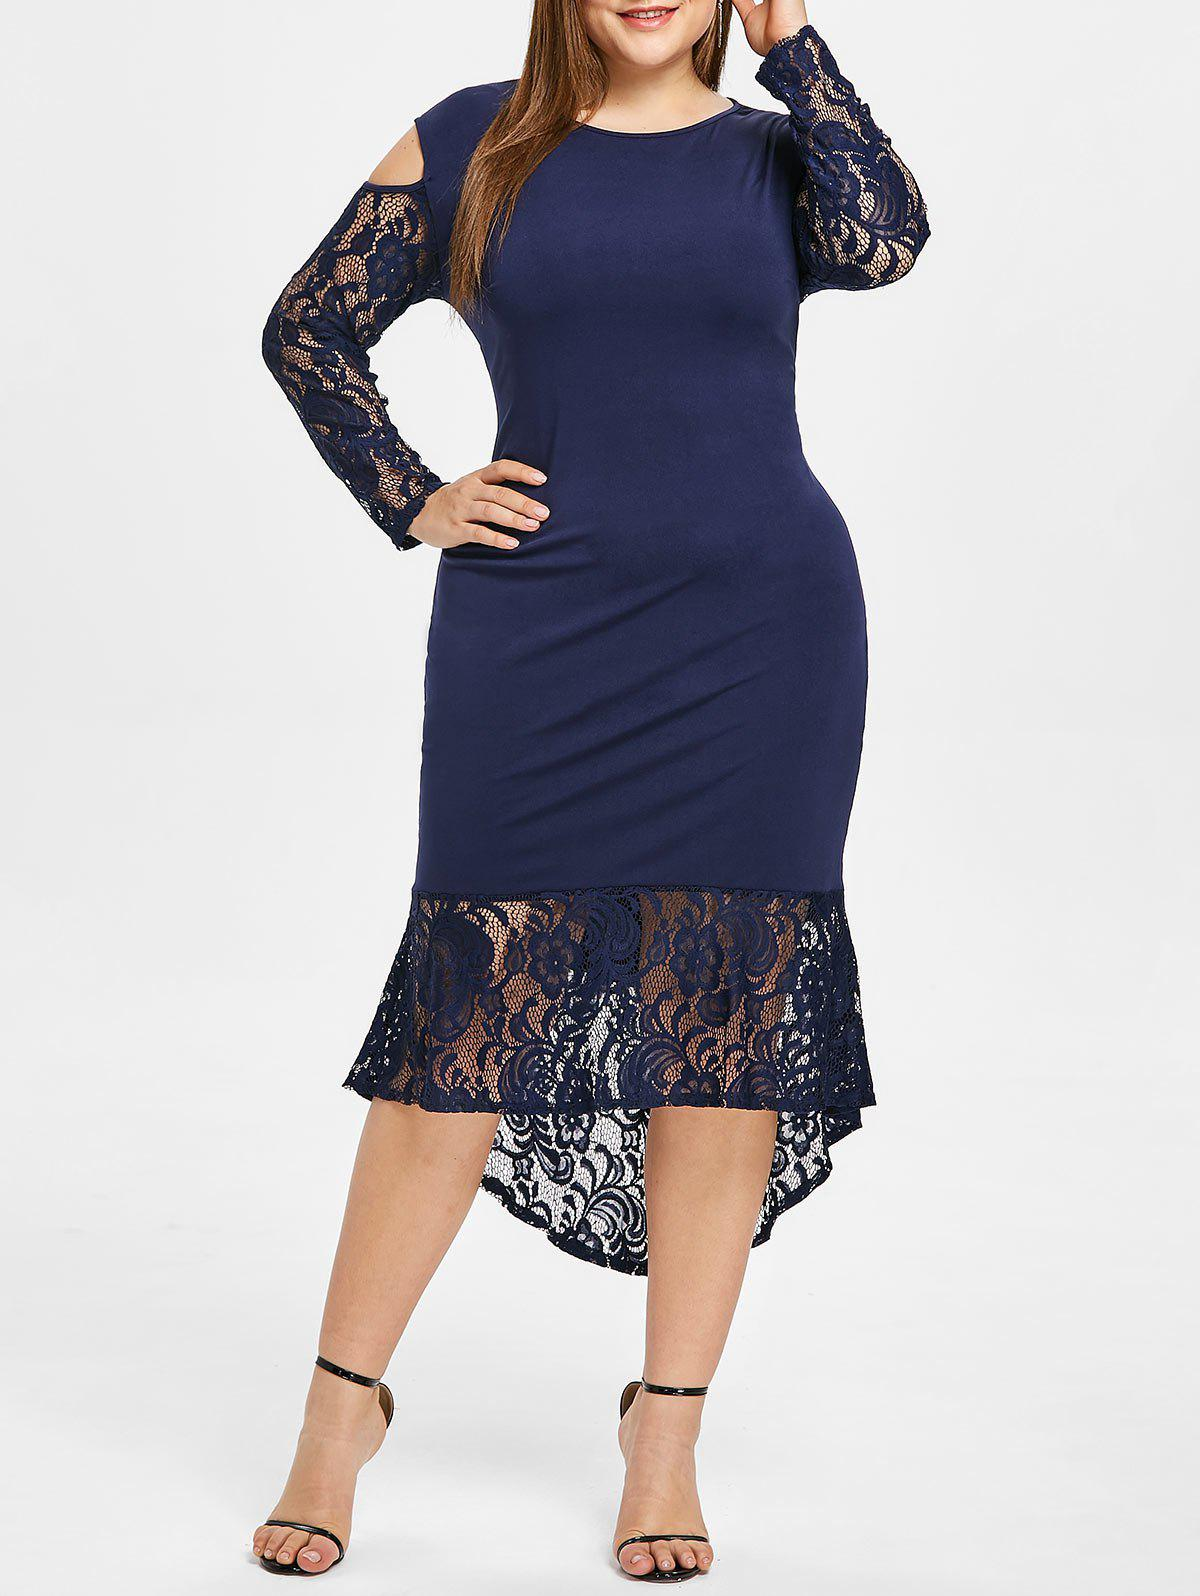 Chic Lace Ruffle Hem Plus Size Bodycon Dress